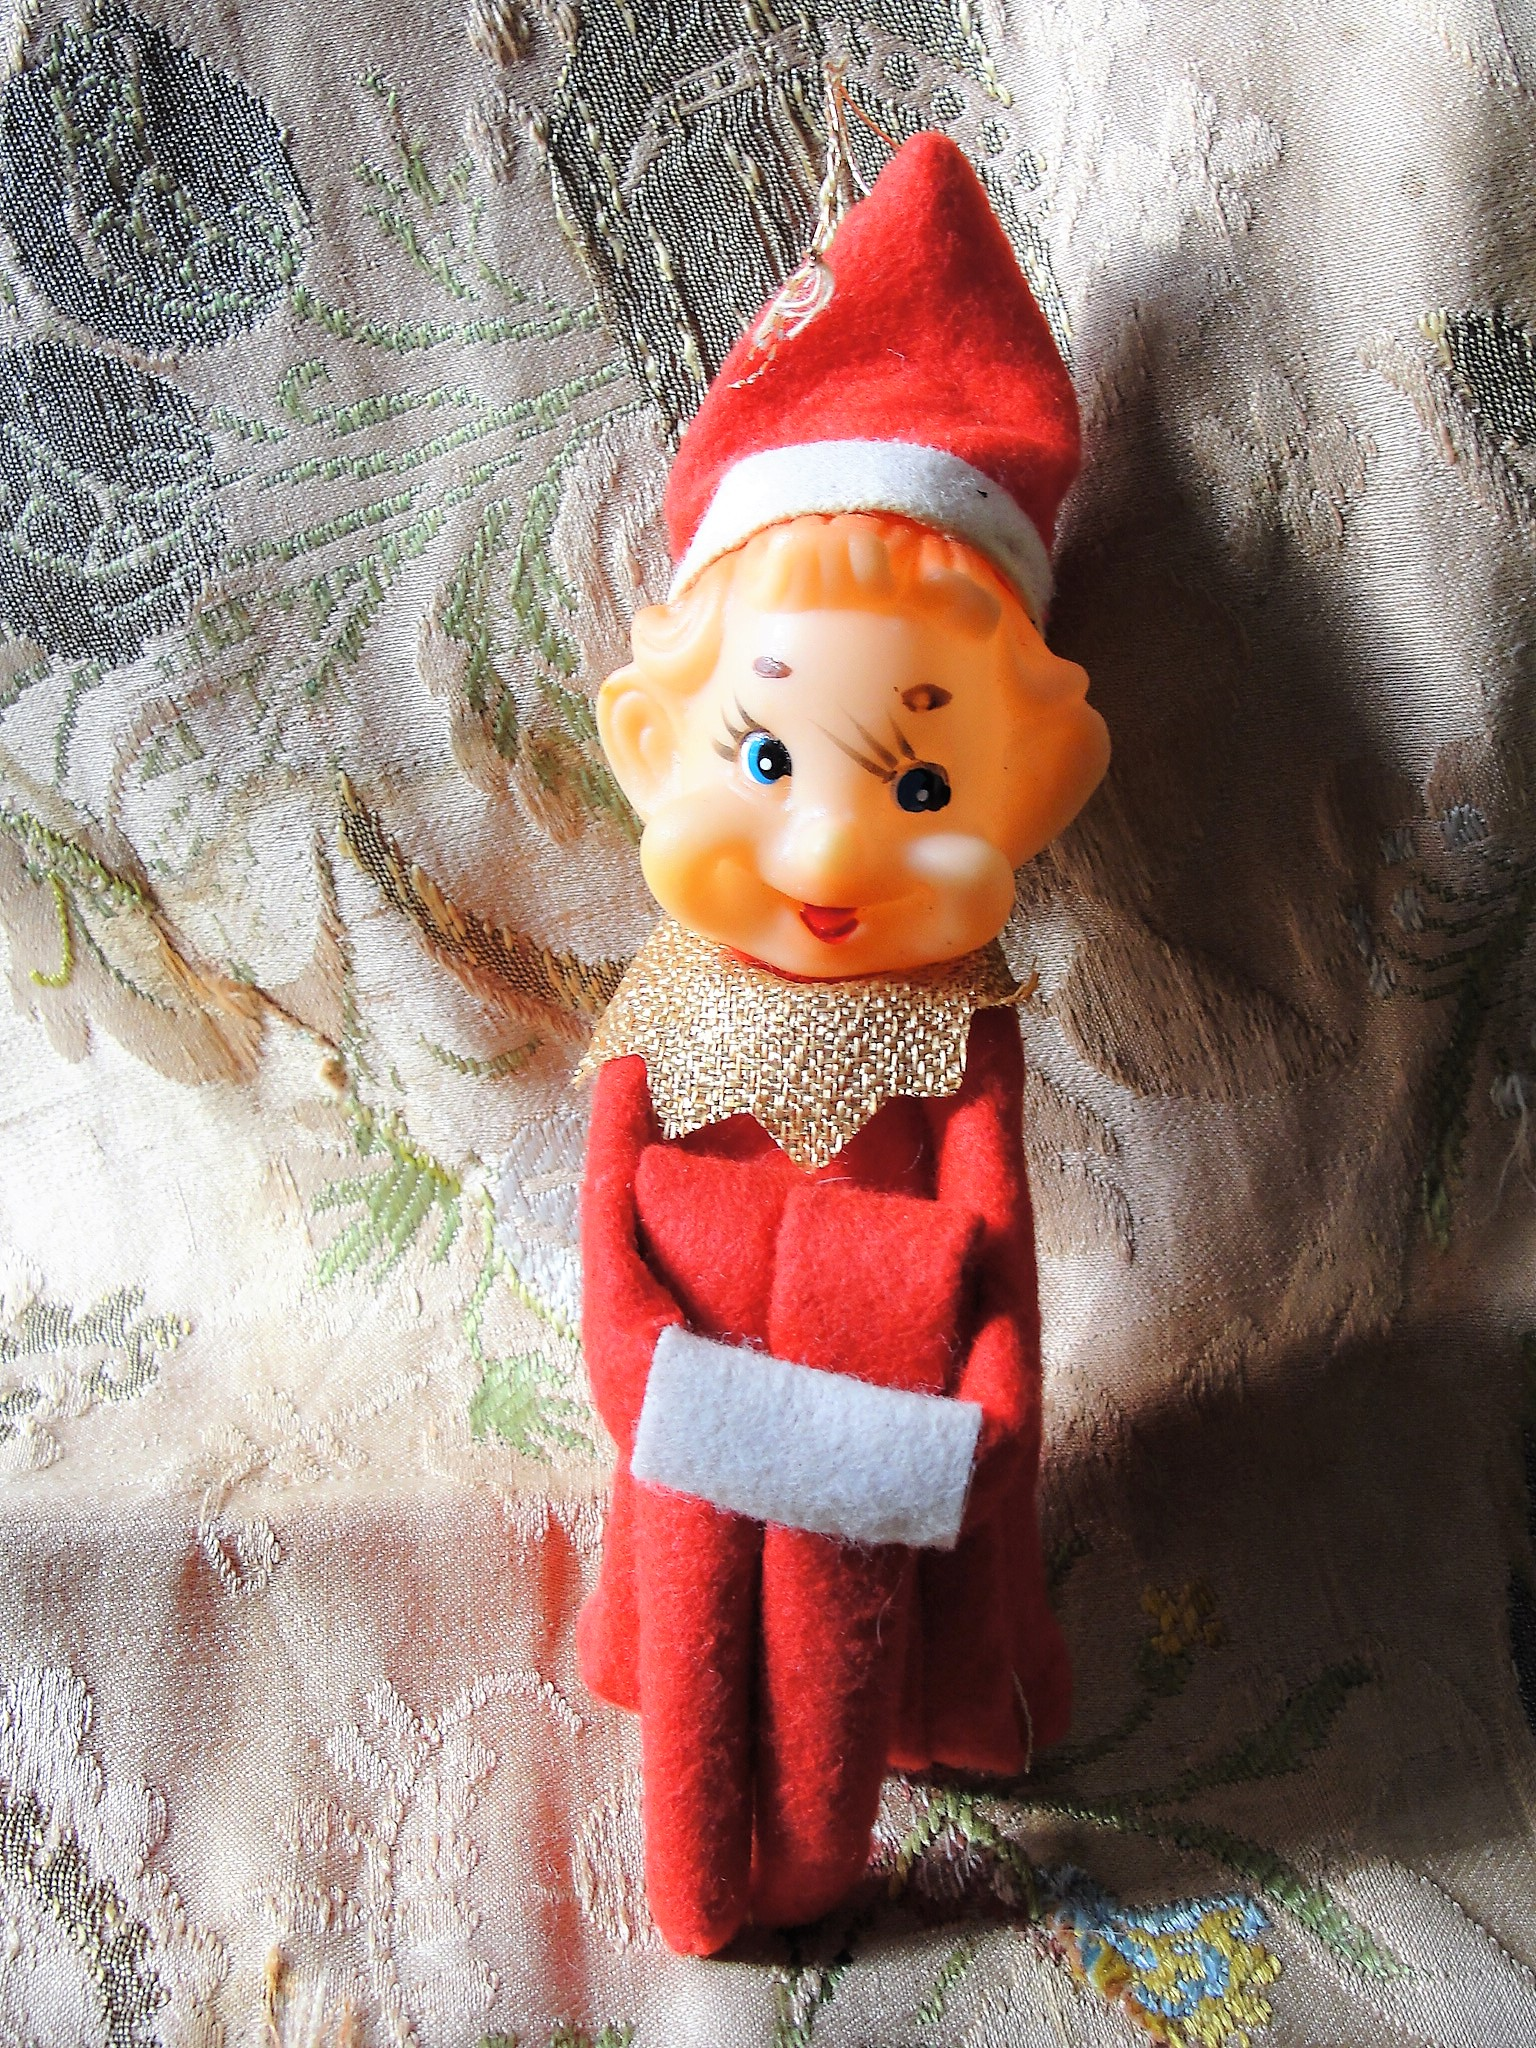 CUTE Vintage 1950s 60s Green Knee Hugger Pixie Elf, Large Size Elf Shelf Sitter Japan Kitsch Elf Kitschy Christmas Ornament Mid Century Christmas Decorations